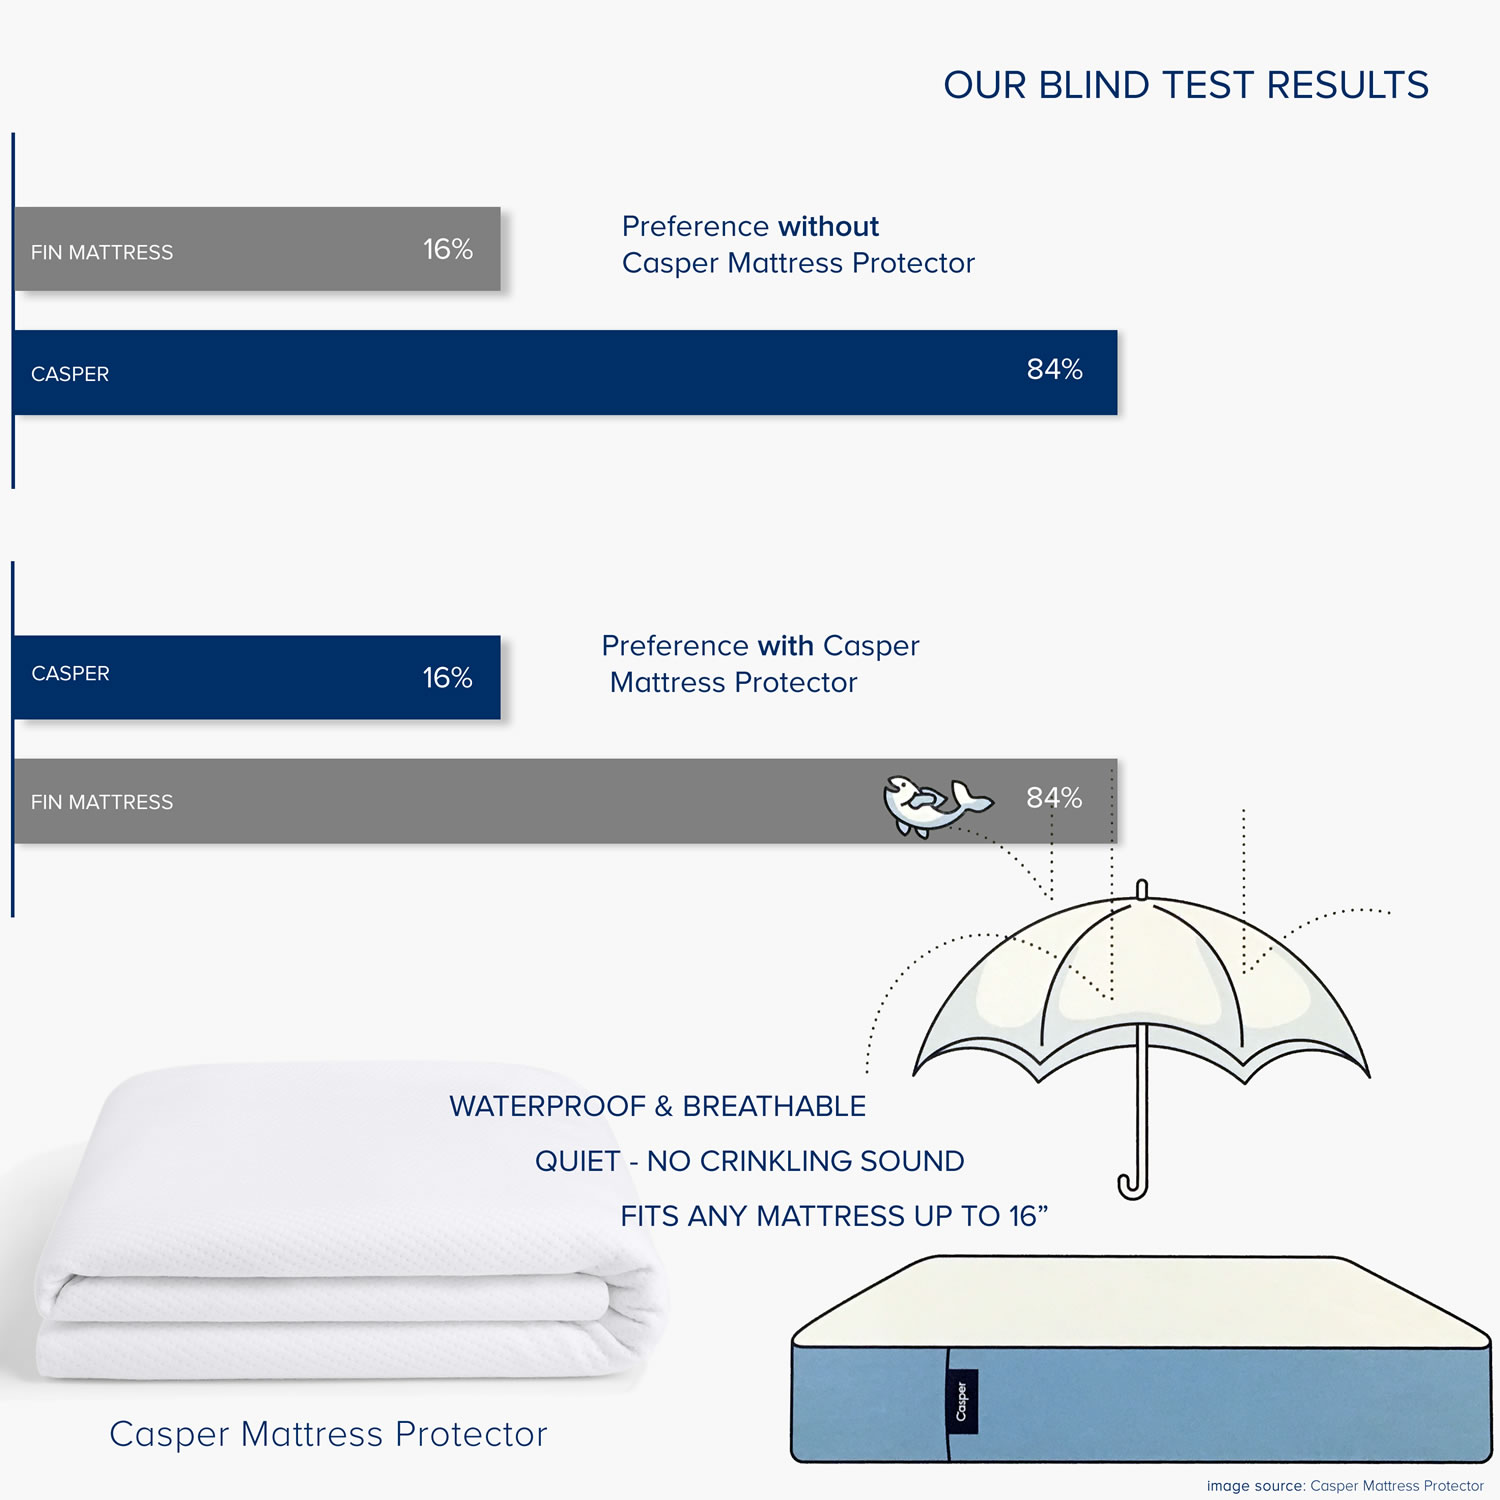 CASPER HACK MATTRESS PROTECTOR BLIND TEST RESULTS with a  FIN10 MATTRESS